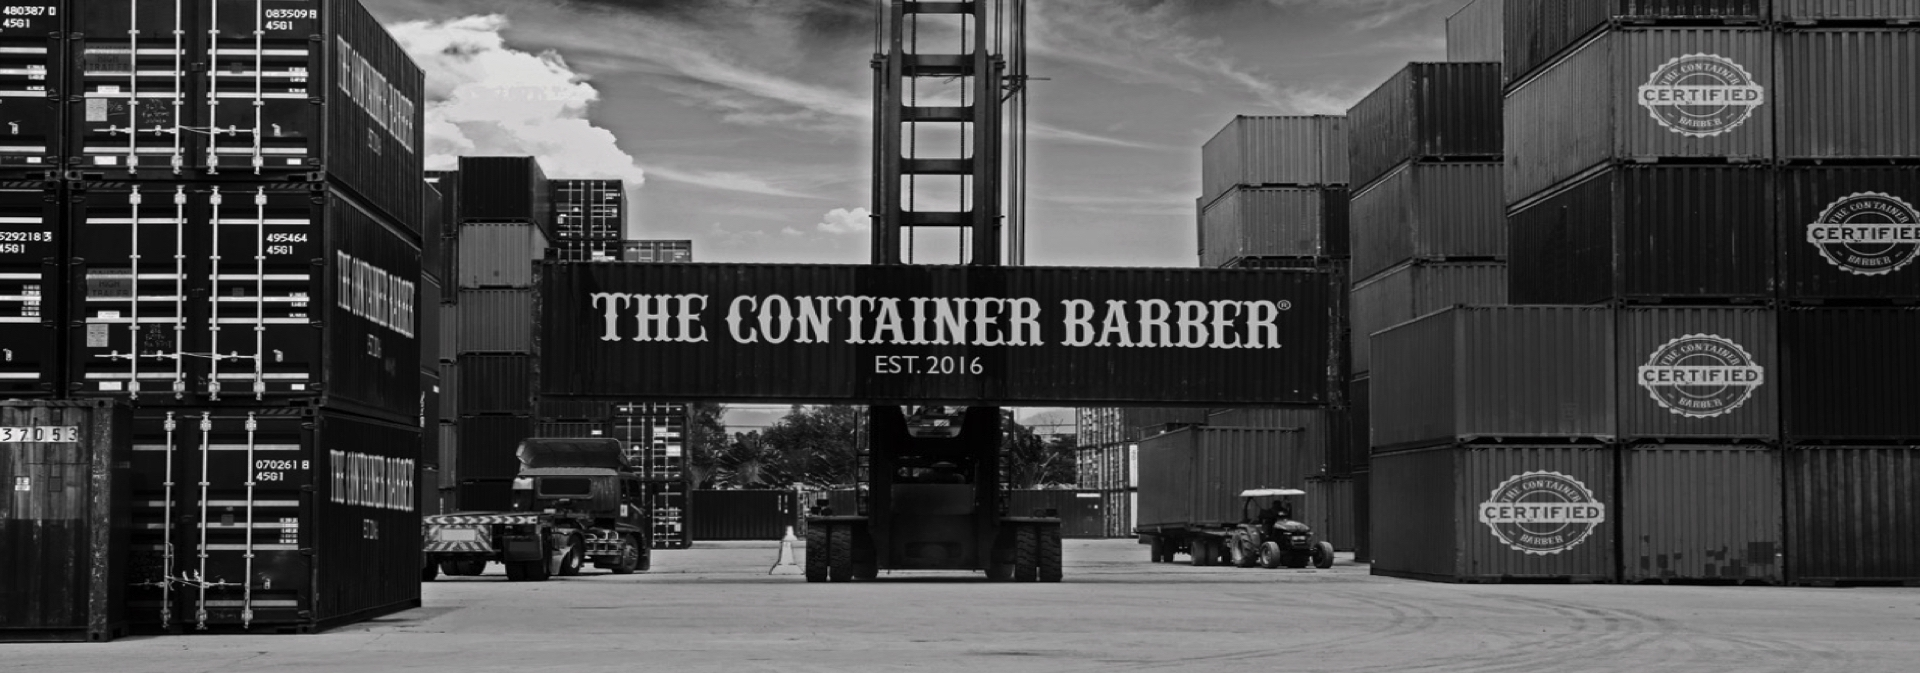 THE CONTAINER BARBER